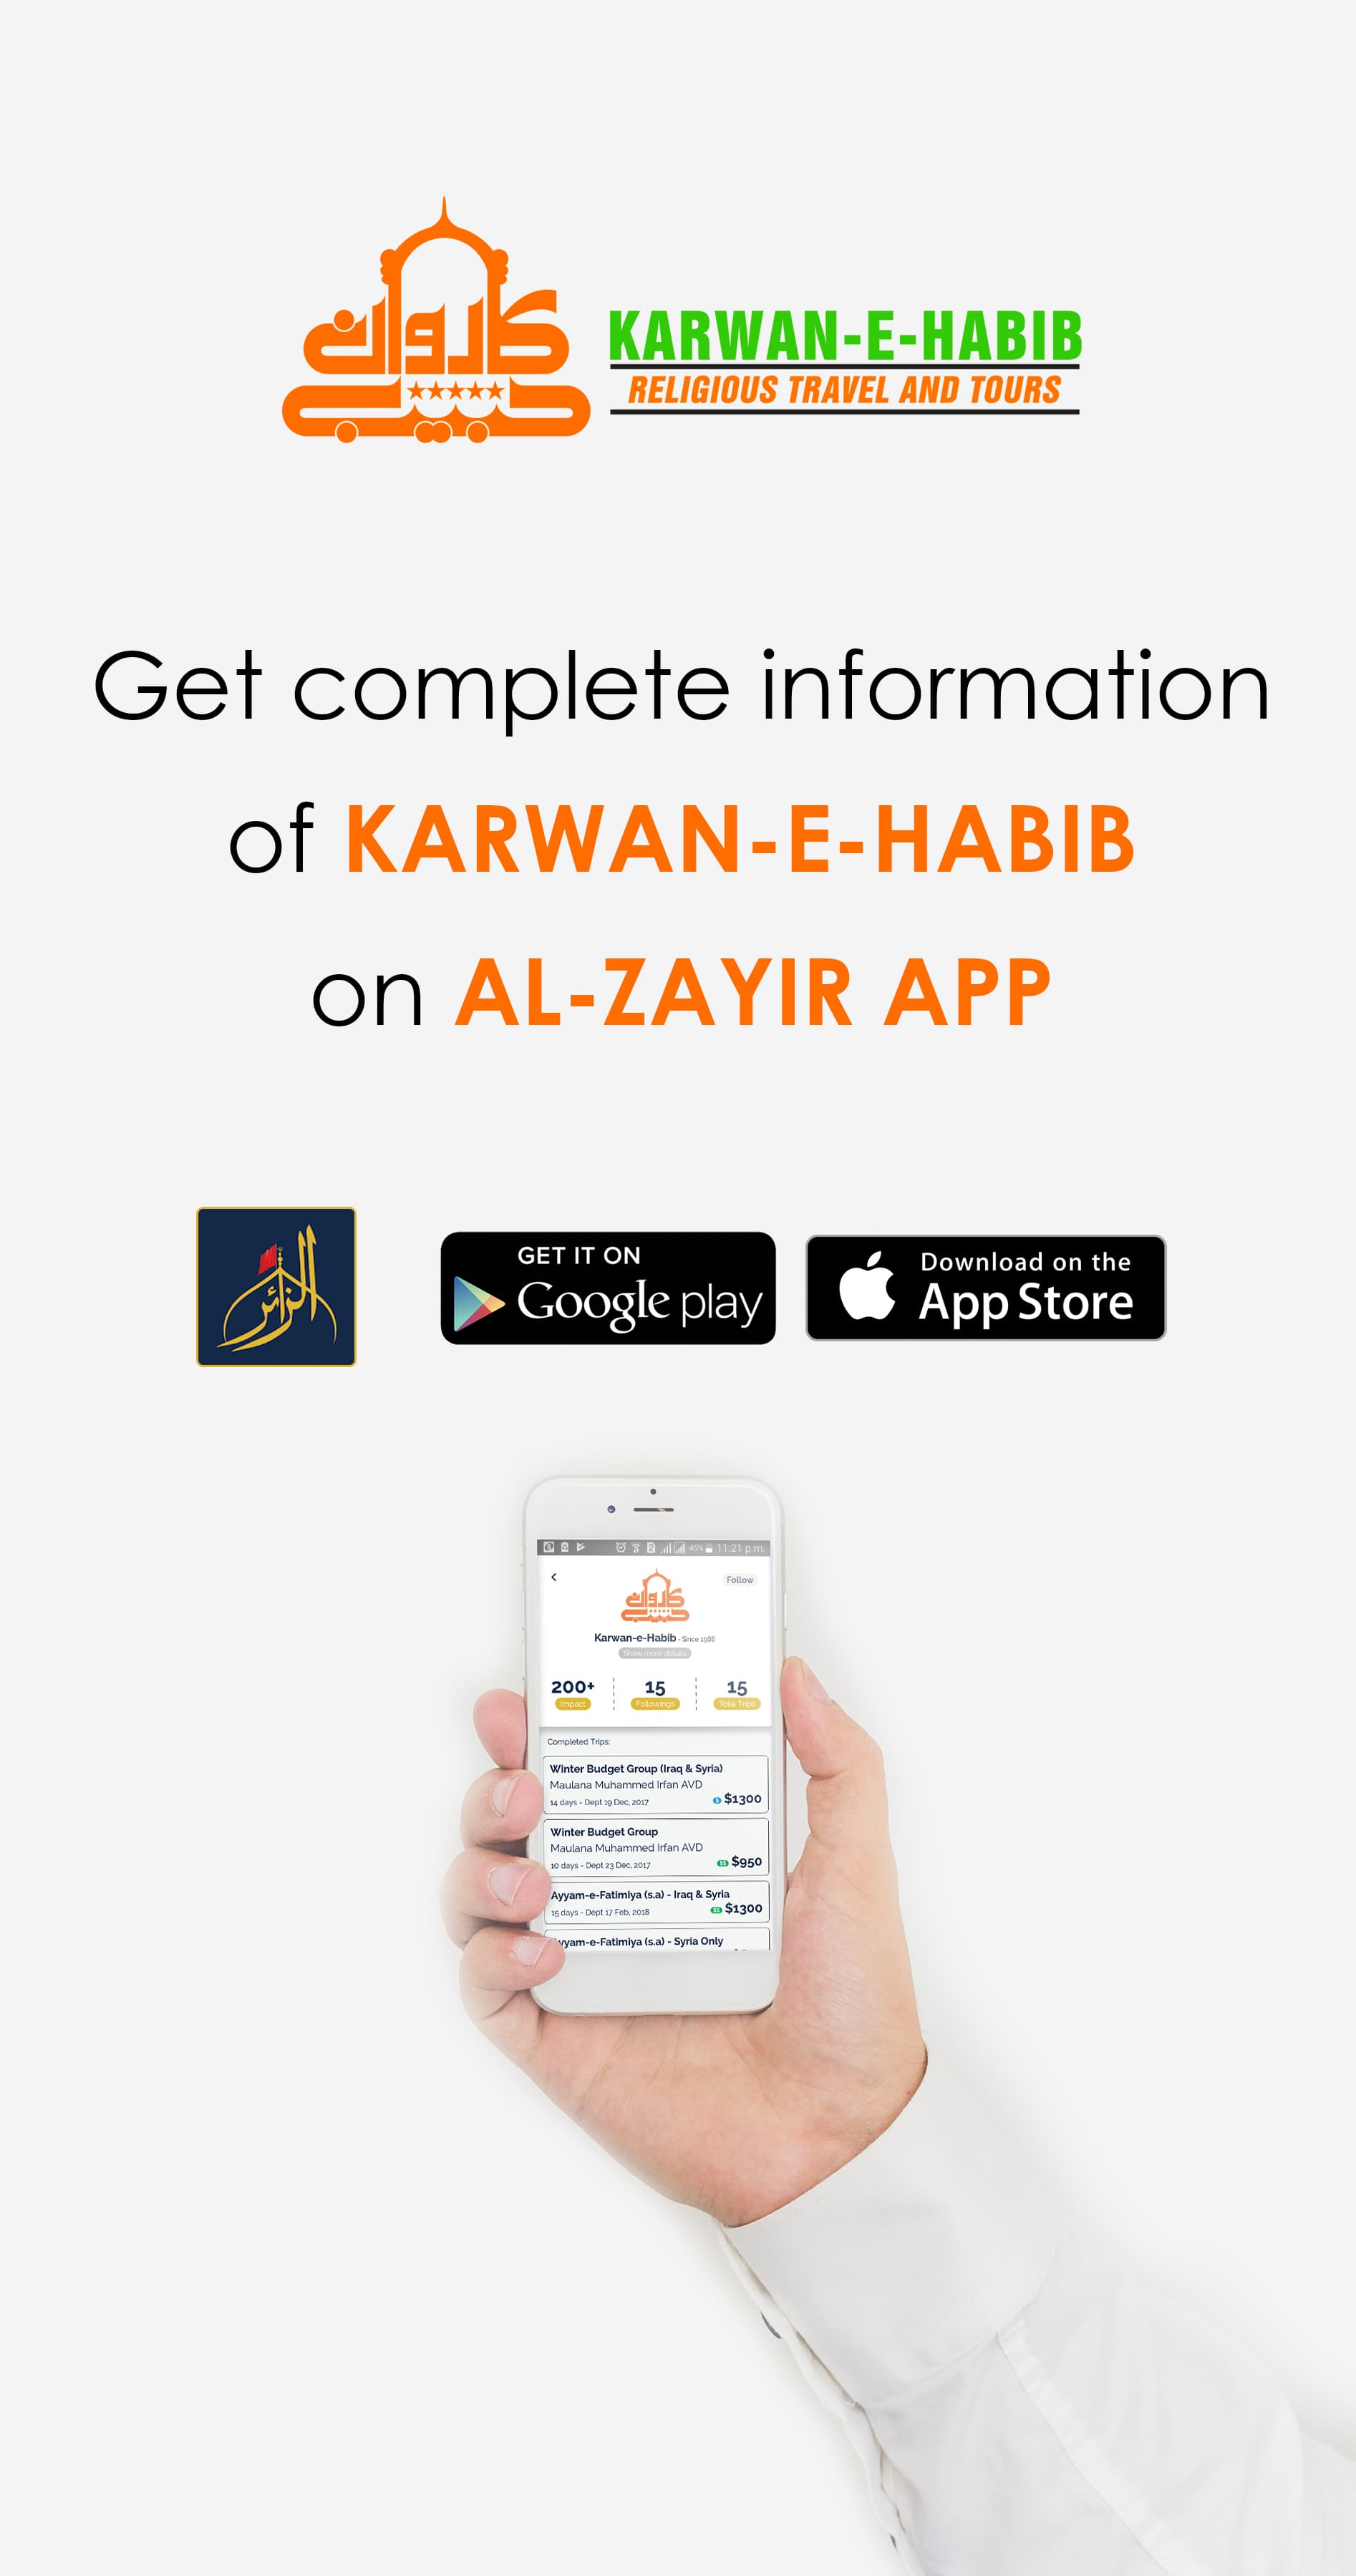 Karwan e Habib Religious Travel , tours and pilgrimage services